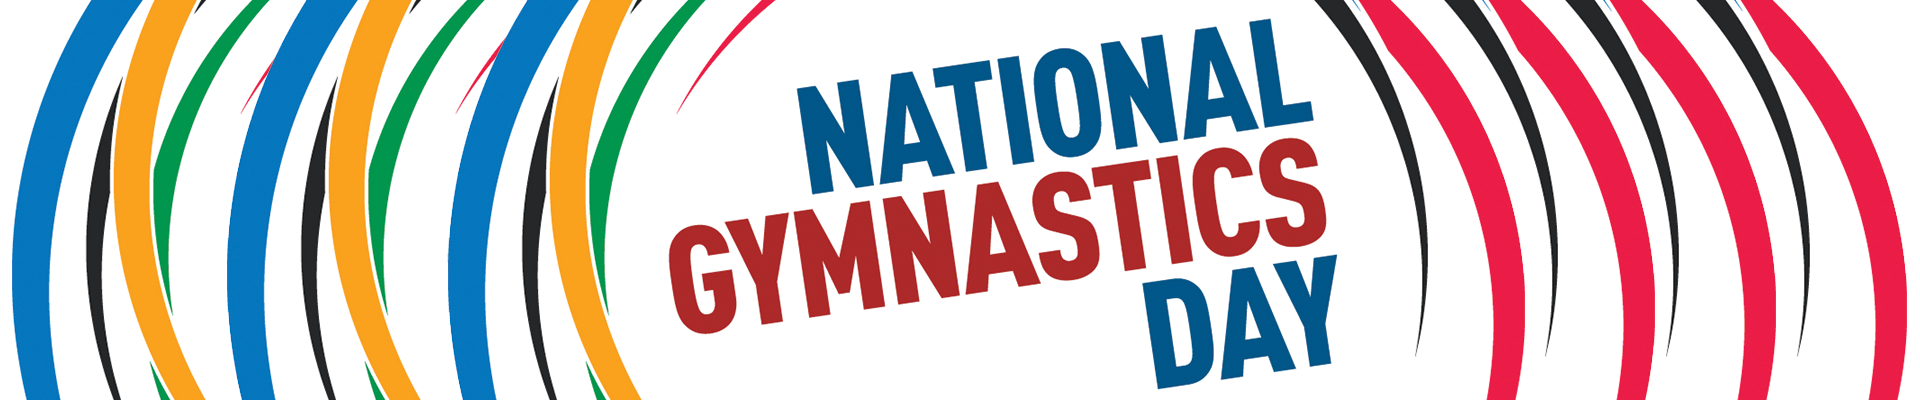 National Gymnastics Day 2016